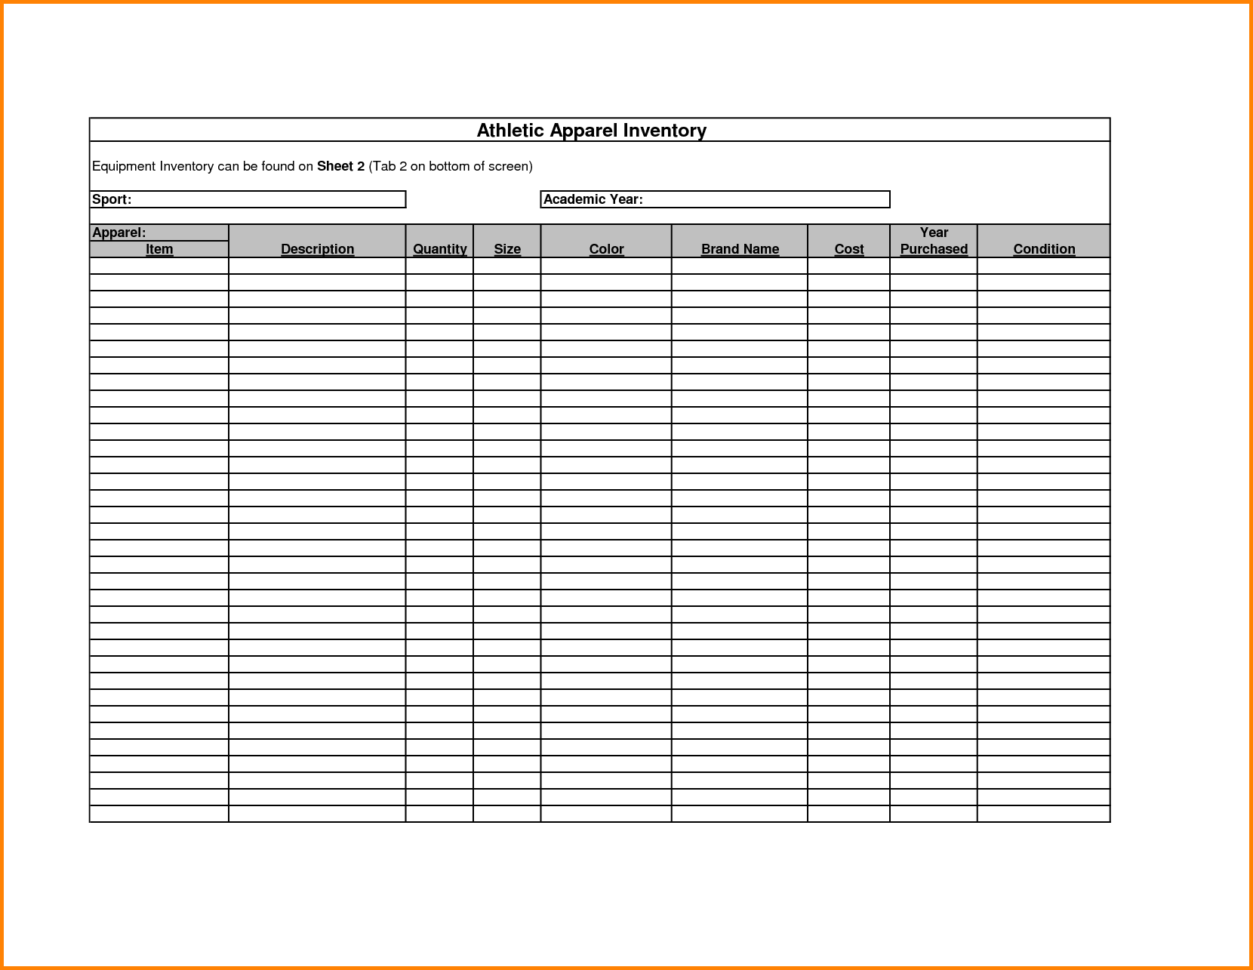 Excel Inventory Tracking Template Small Business Inventory Spreadsheet Template Inventory Management In Excel Free Download Free Printable Inventory Sheets How To Manage Inventory With Excel Equipment Inventory Template Inventory Sheet Template Free Printable  Free Printable Inventory Sheets Inventory Spreadsheet Template Spreadsheet Templates for Busines